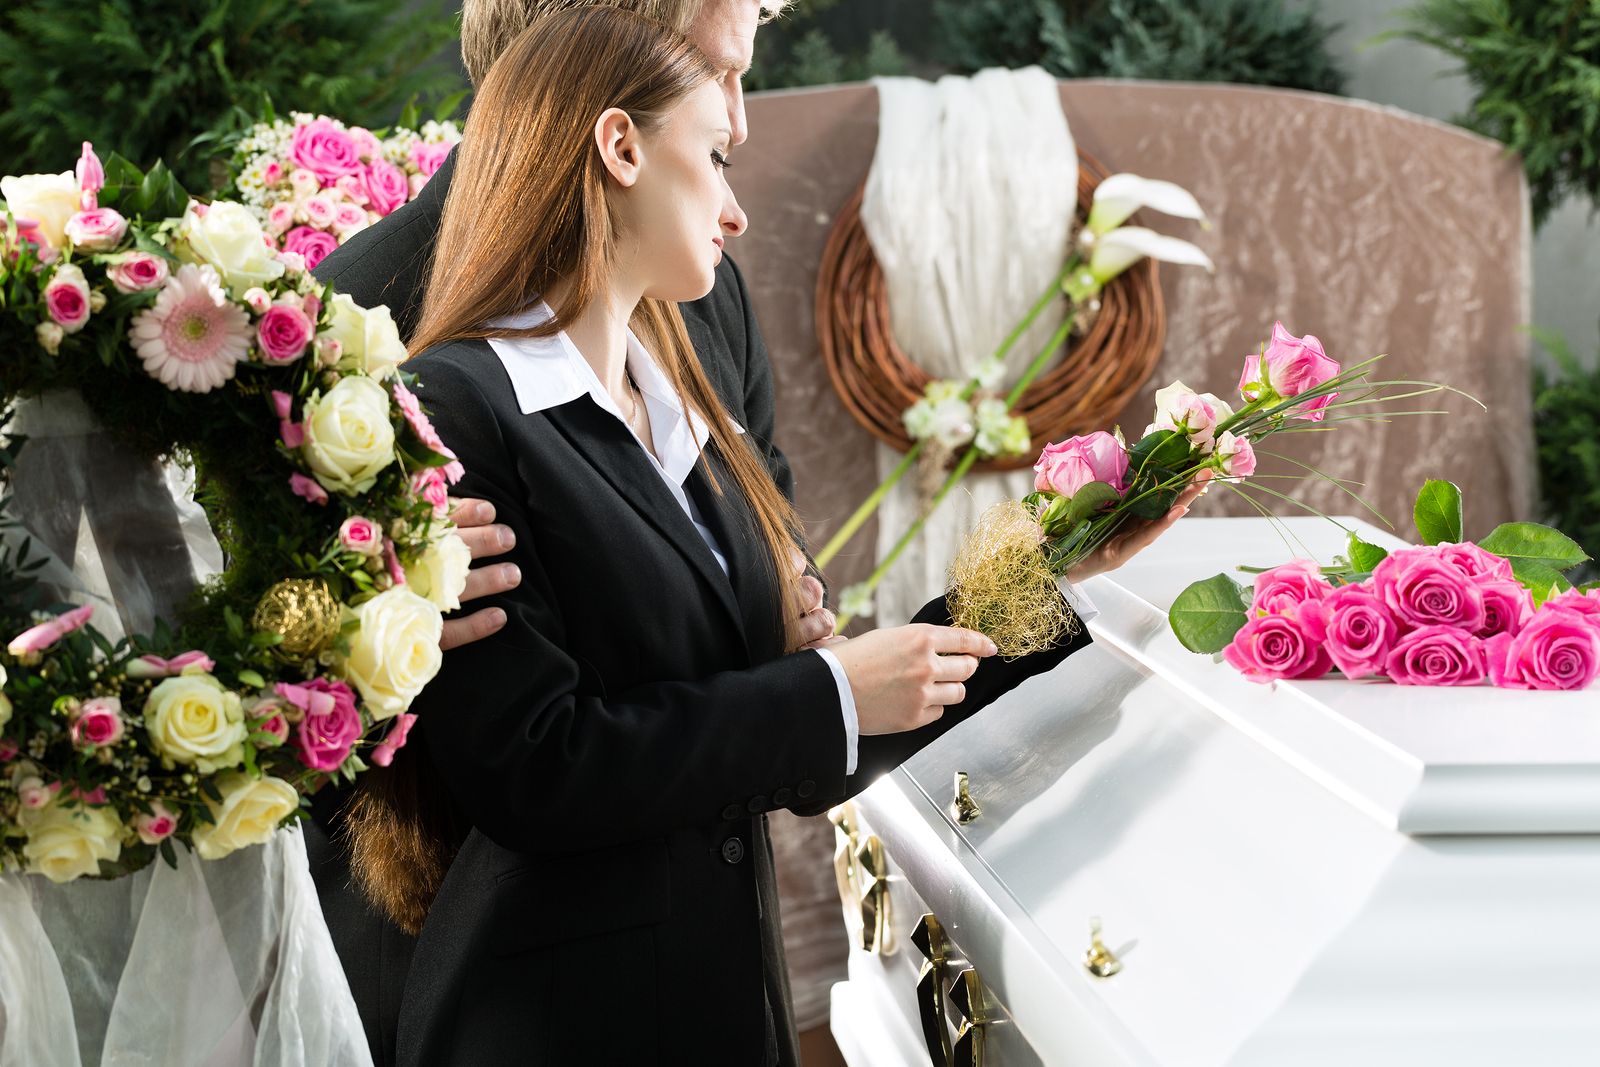 bigstock-Mourning-man-and-woman-on-fune-46029547